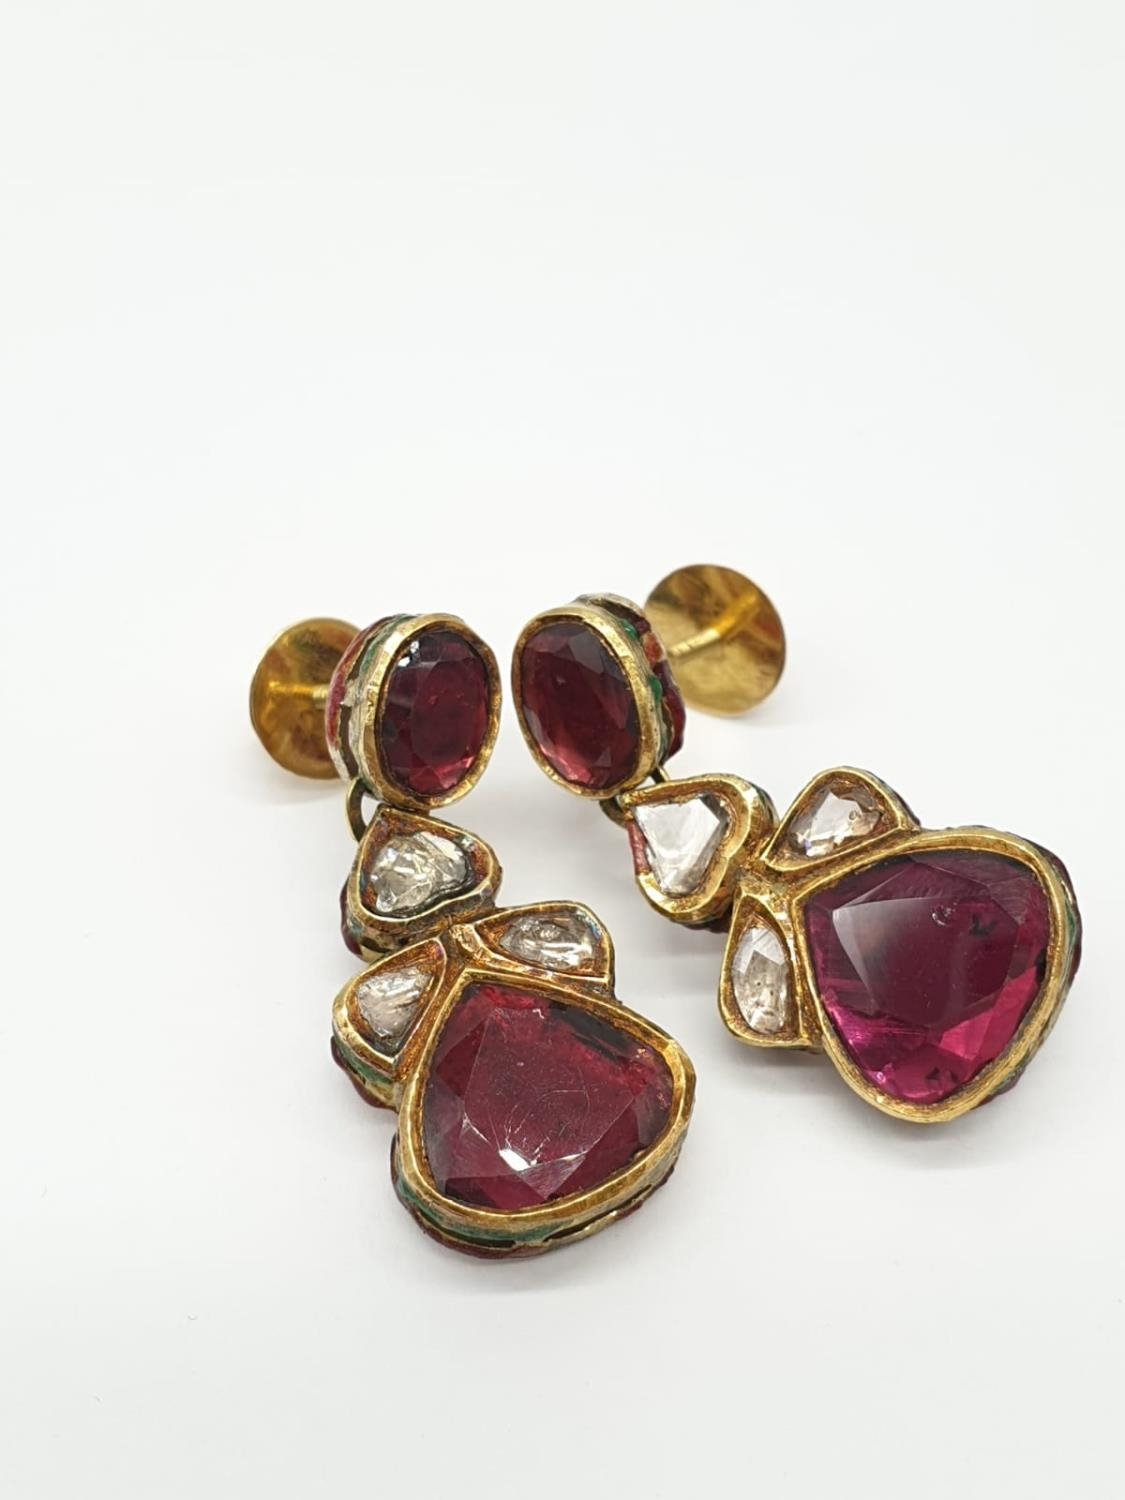 18k Indian set of Ruby and Rose Diamonds NECKLACE (40cm) and EARRINGS. 68g. - Image 9 of 9